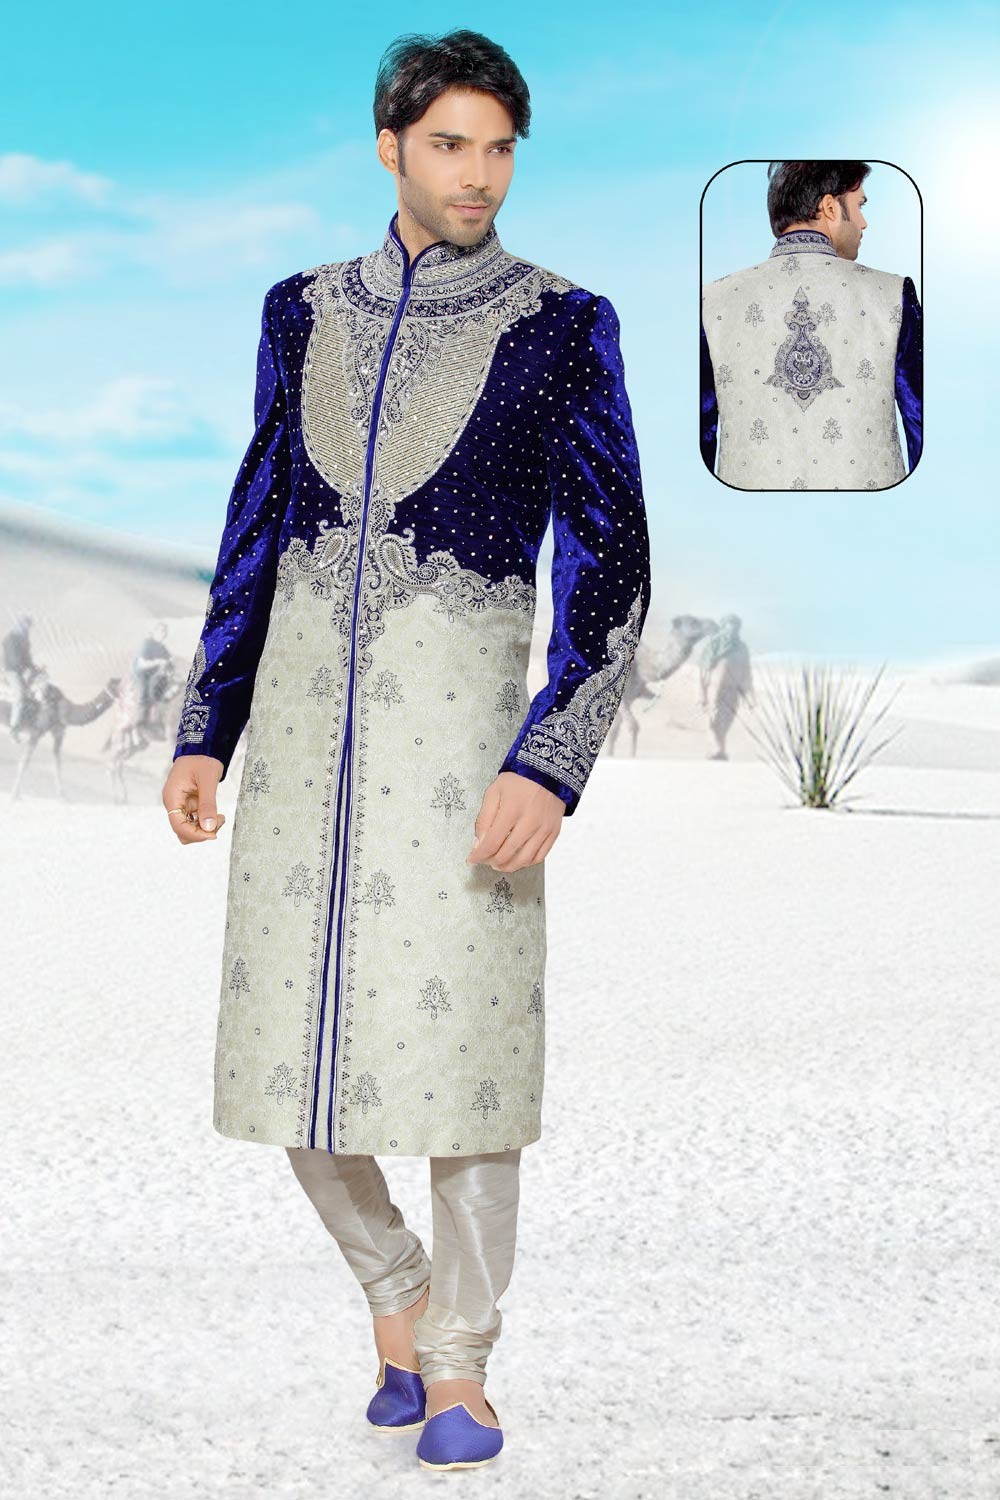 Buy Cream & Blue mens sherwani online